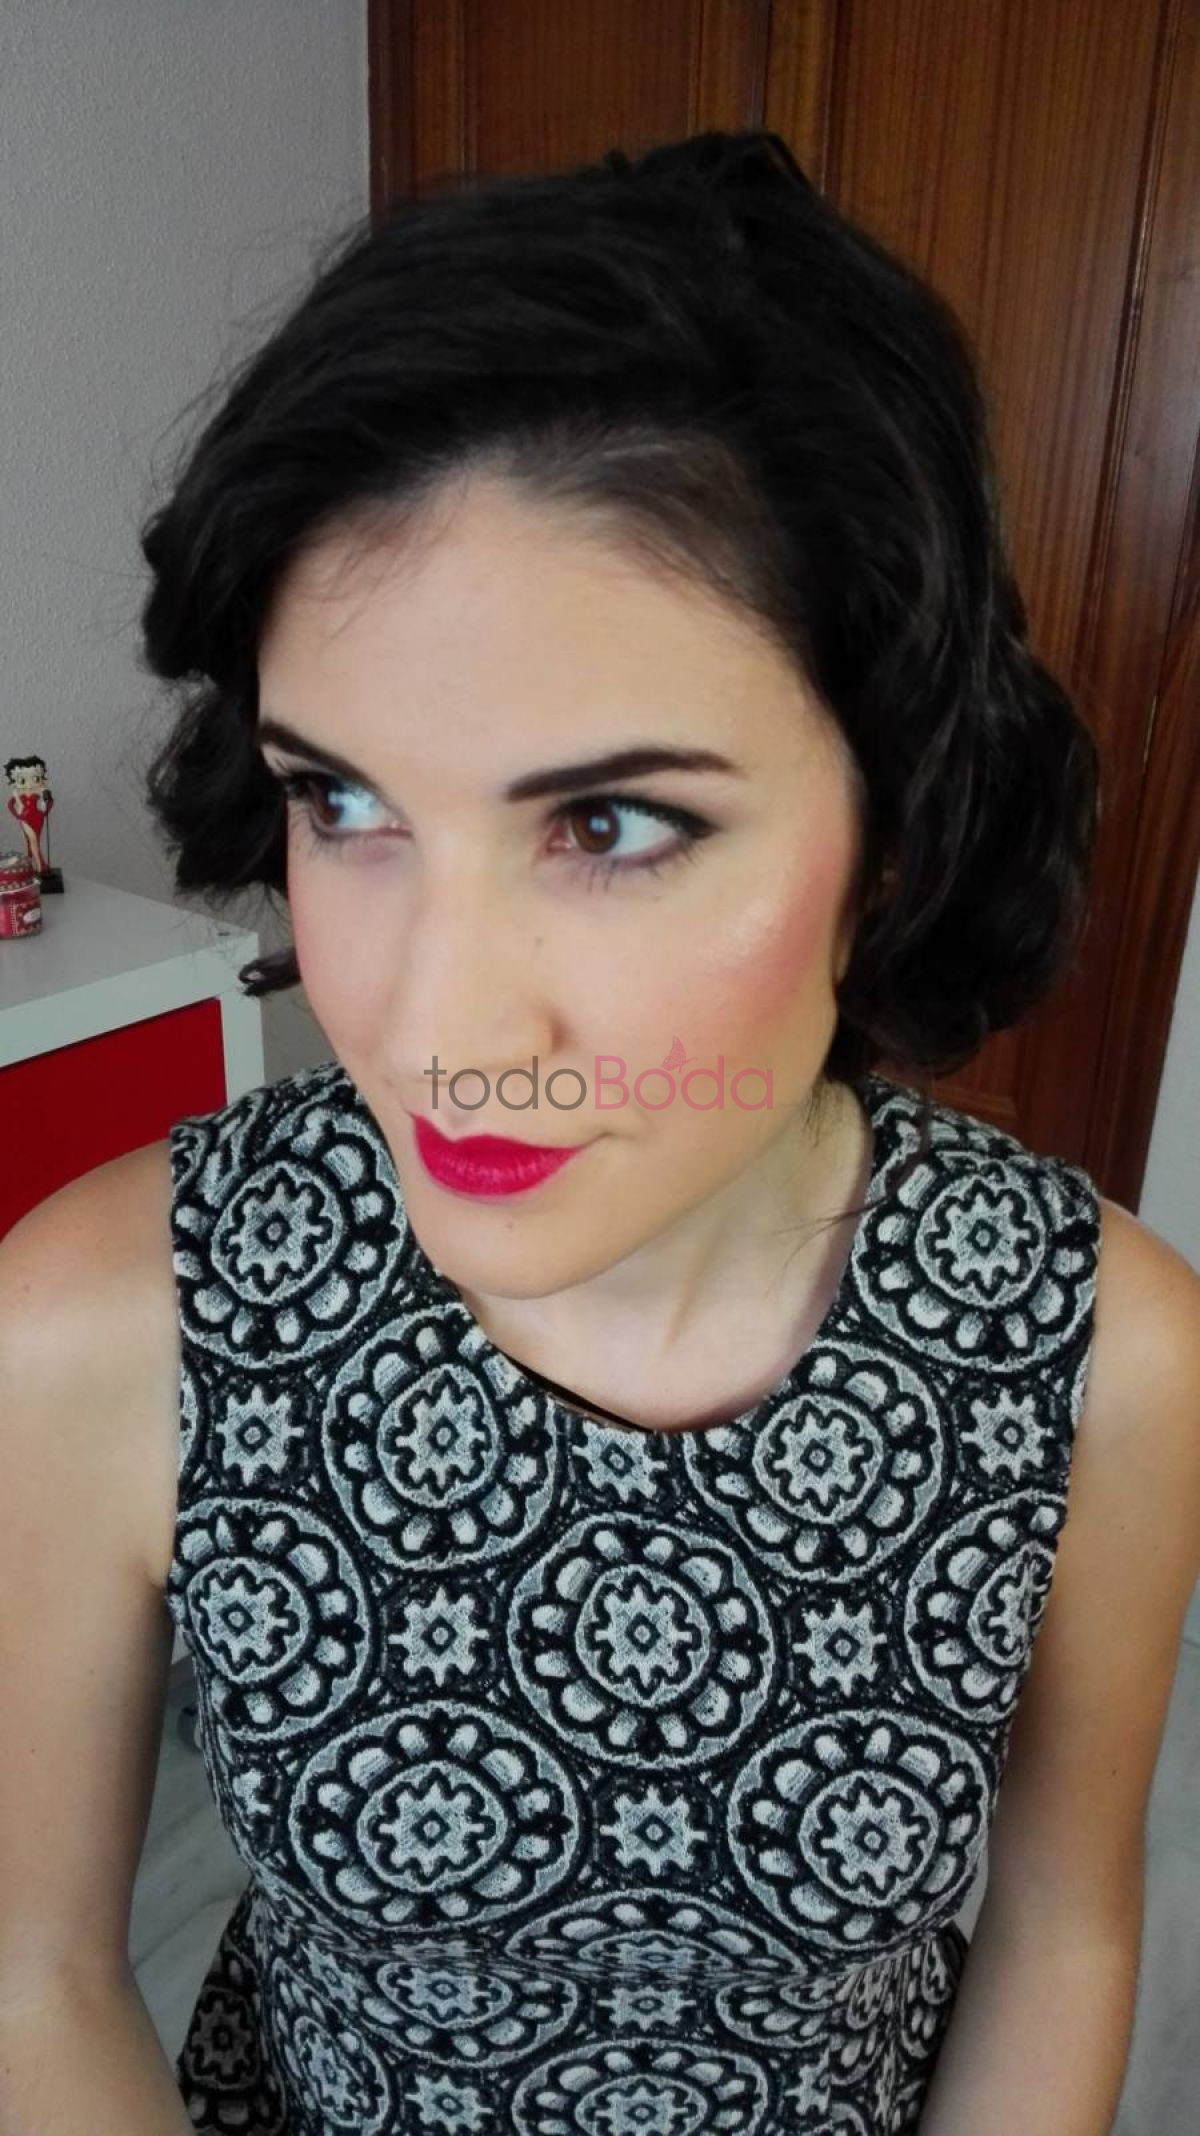 Tu boda en María Ruiz - Make Up Artist 9